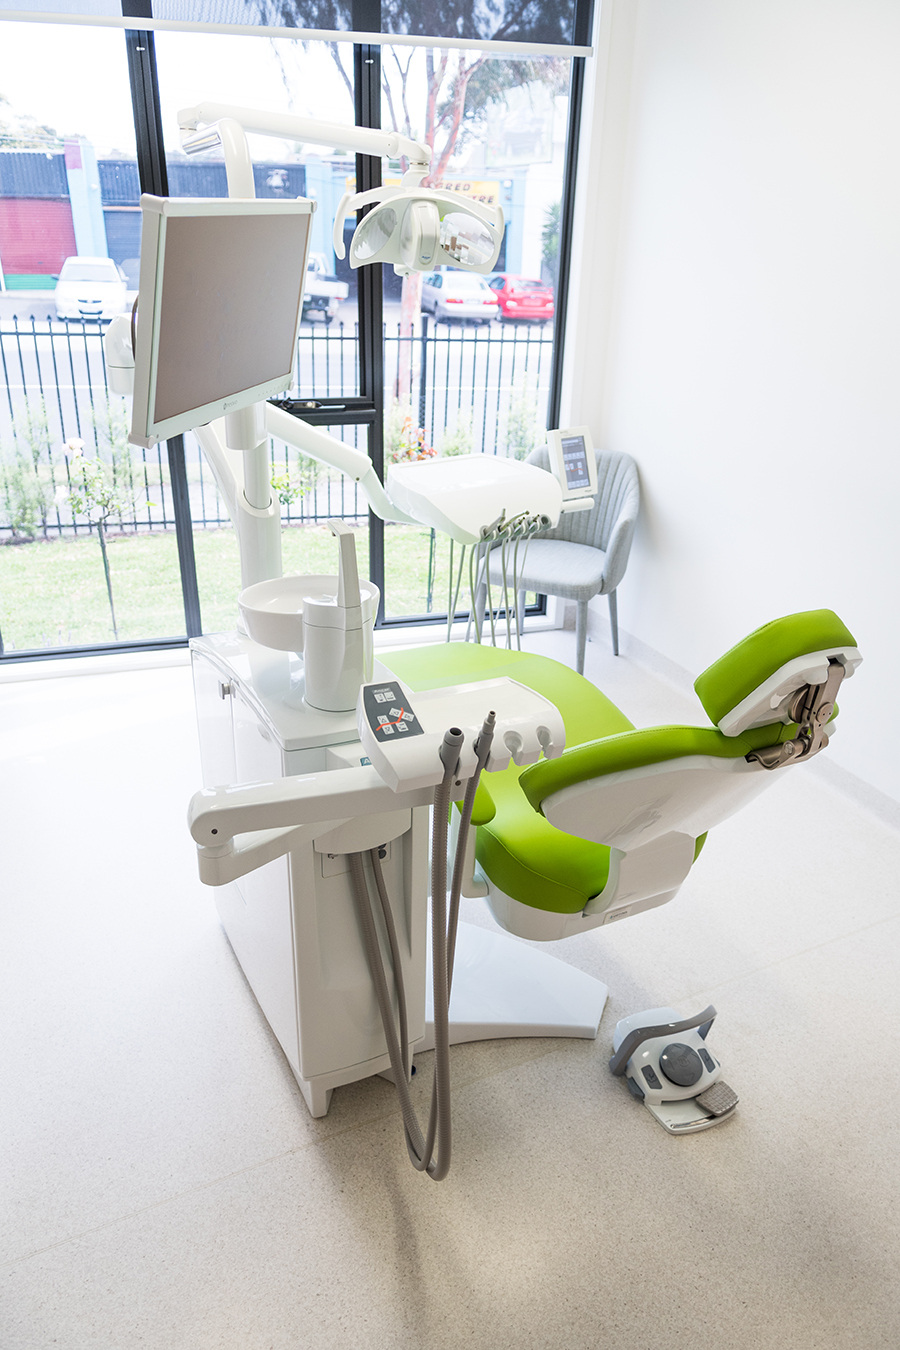 Used Dental Chairs Ancar Dental All The Reasons Why Investing In A New Dental Chair